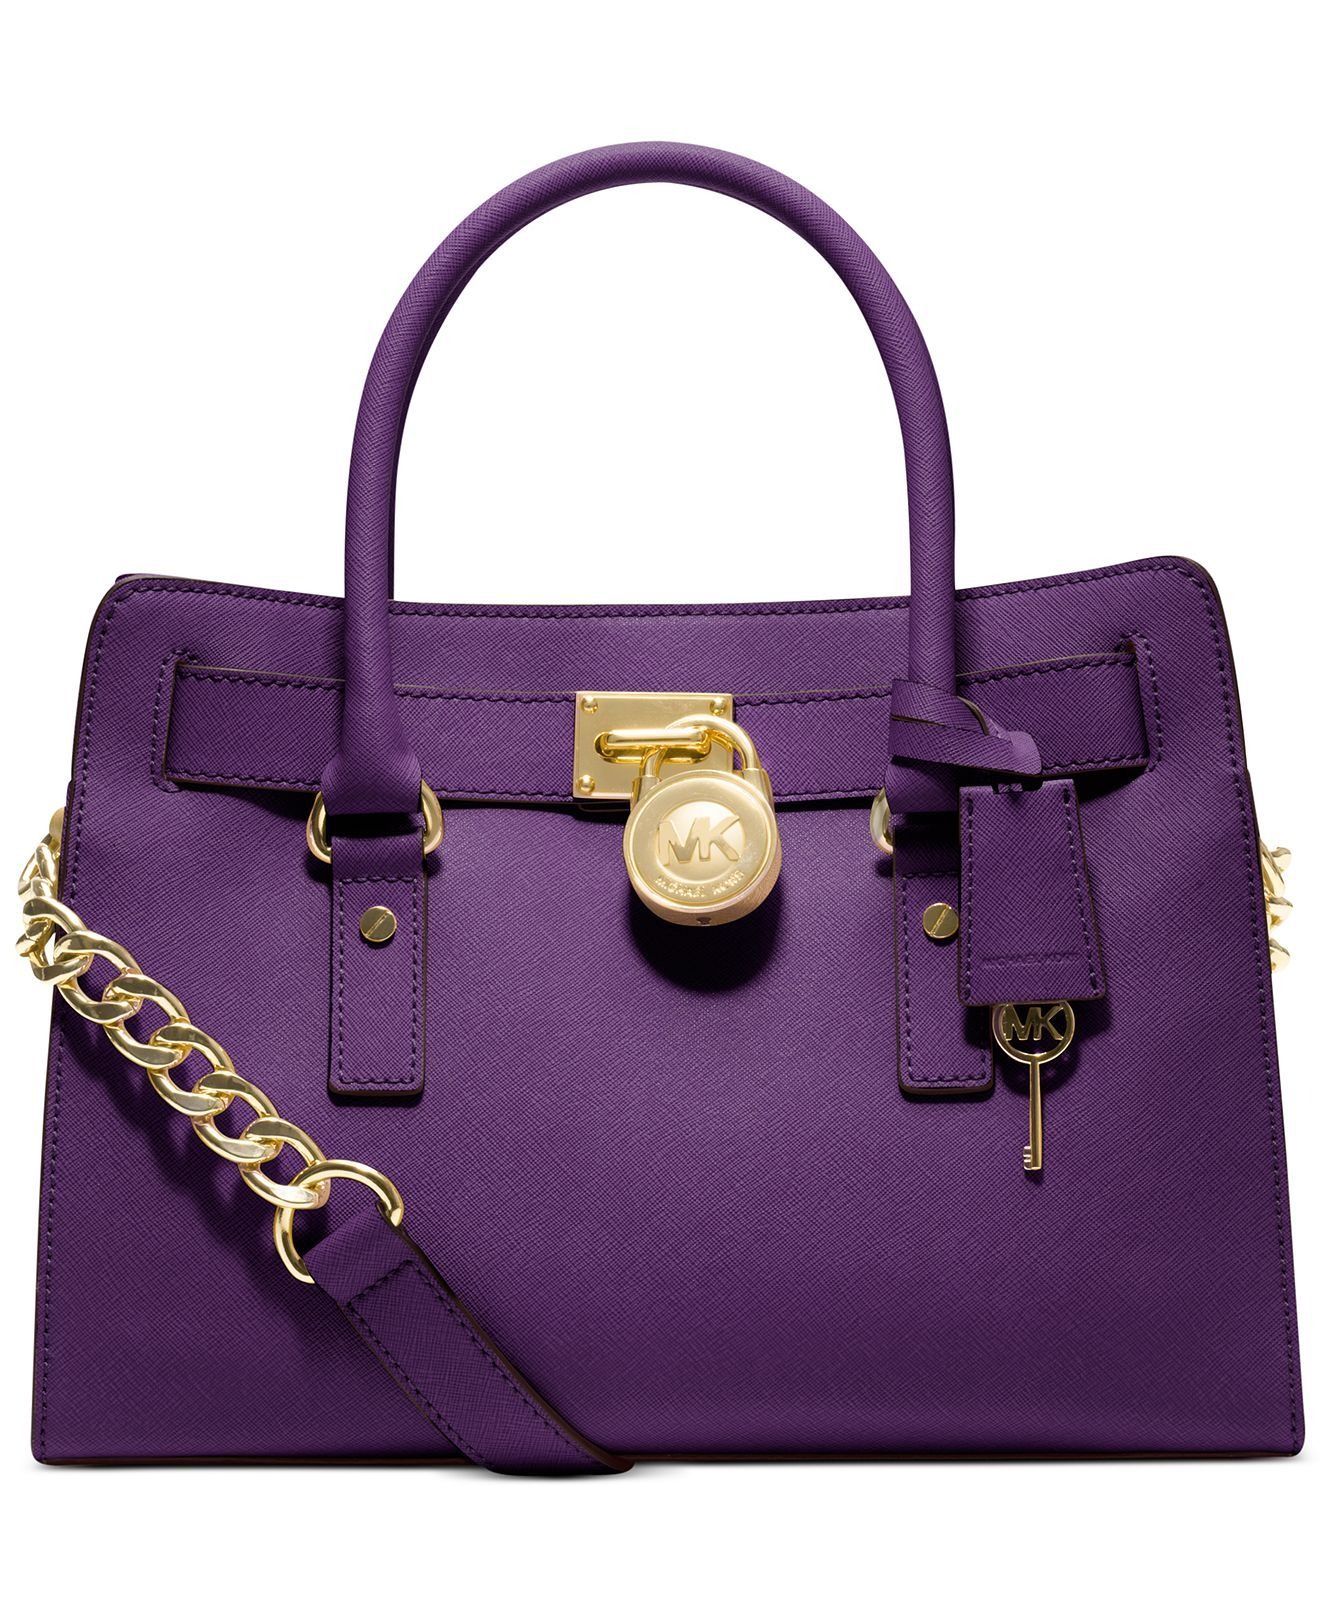 37699762606f MICHAEL Michael Kors Hamilton Saffiano Leather E W Satchel - Satchels -  Handbags   Accessories - Macy s